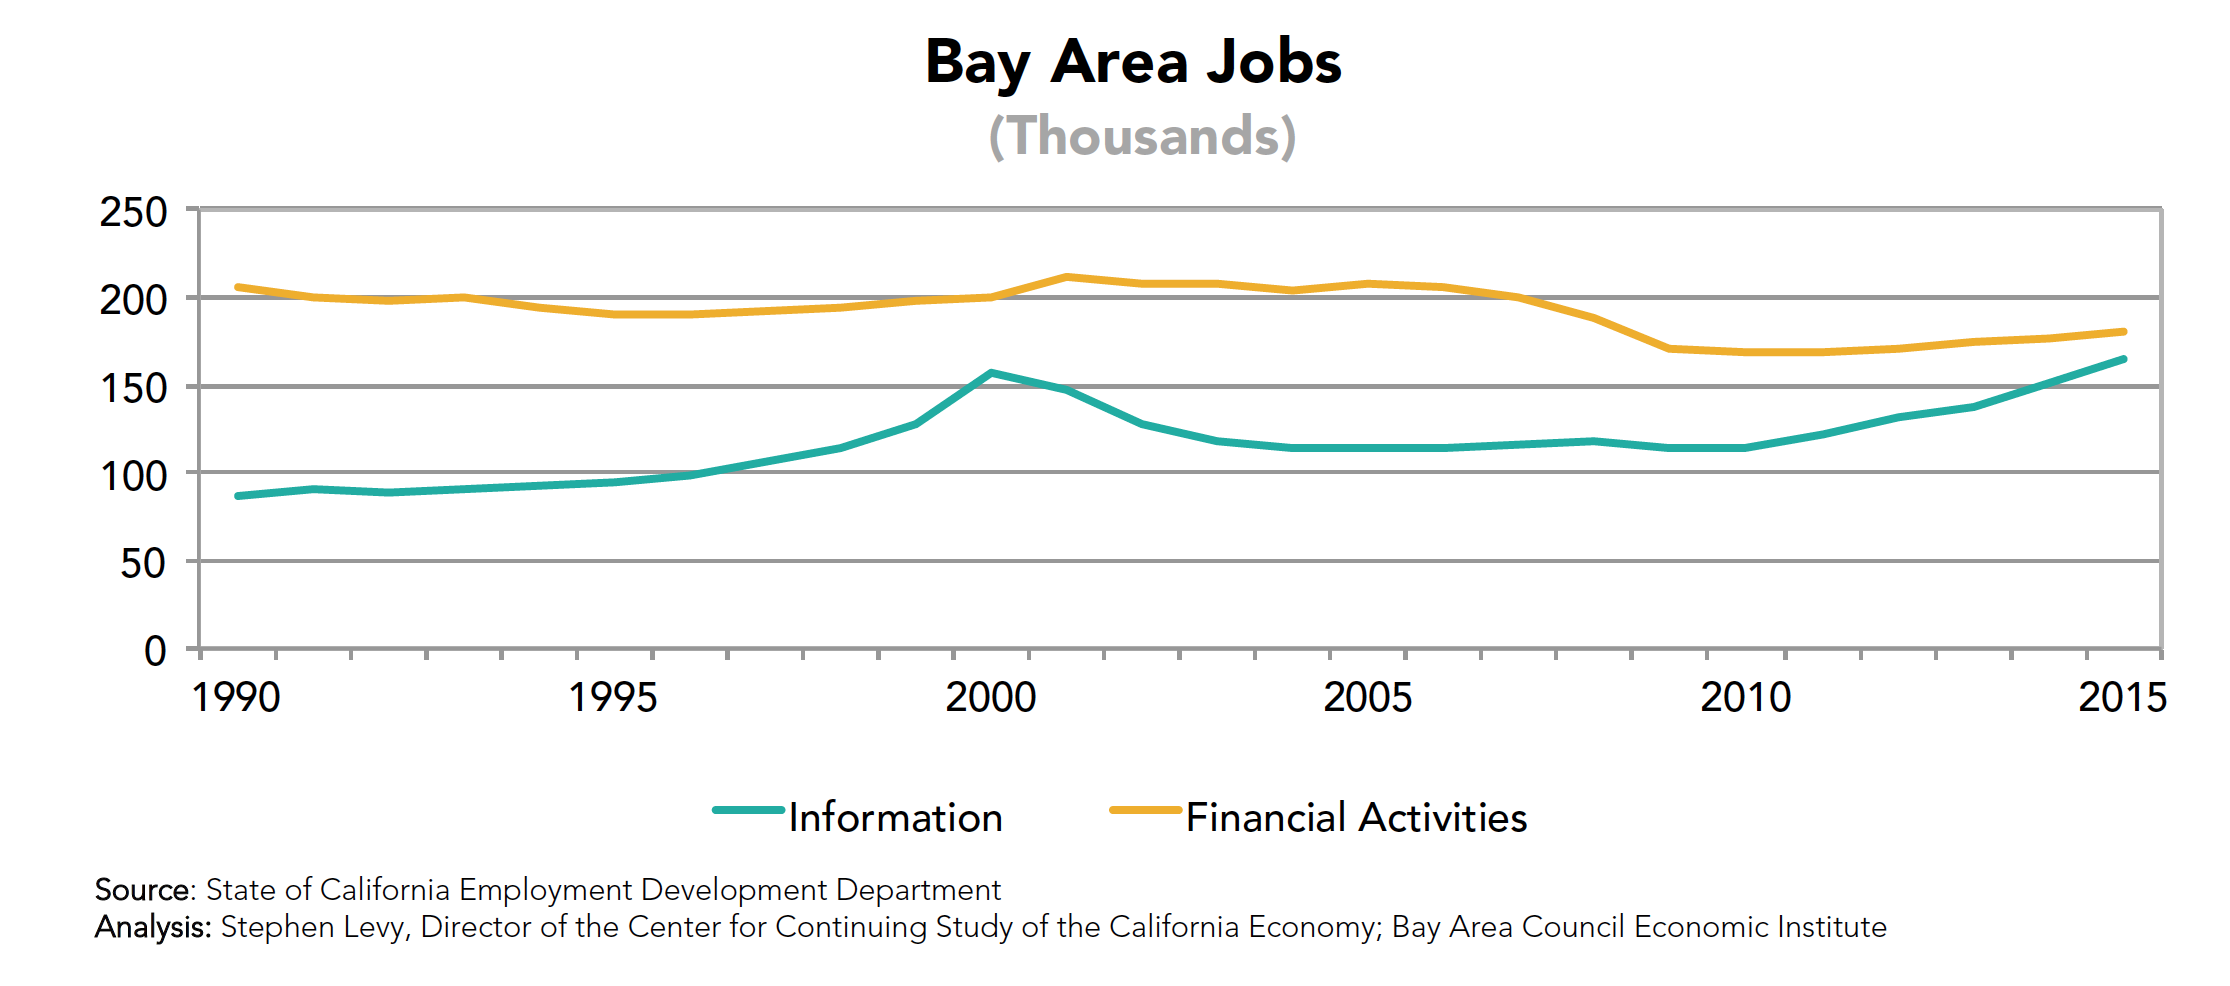 Bay Area Jobs (Information)